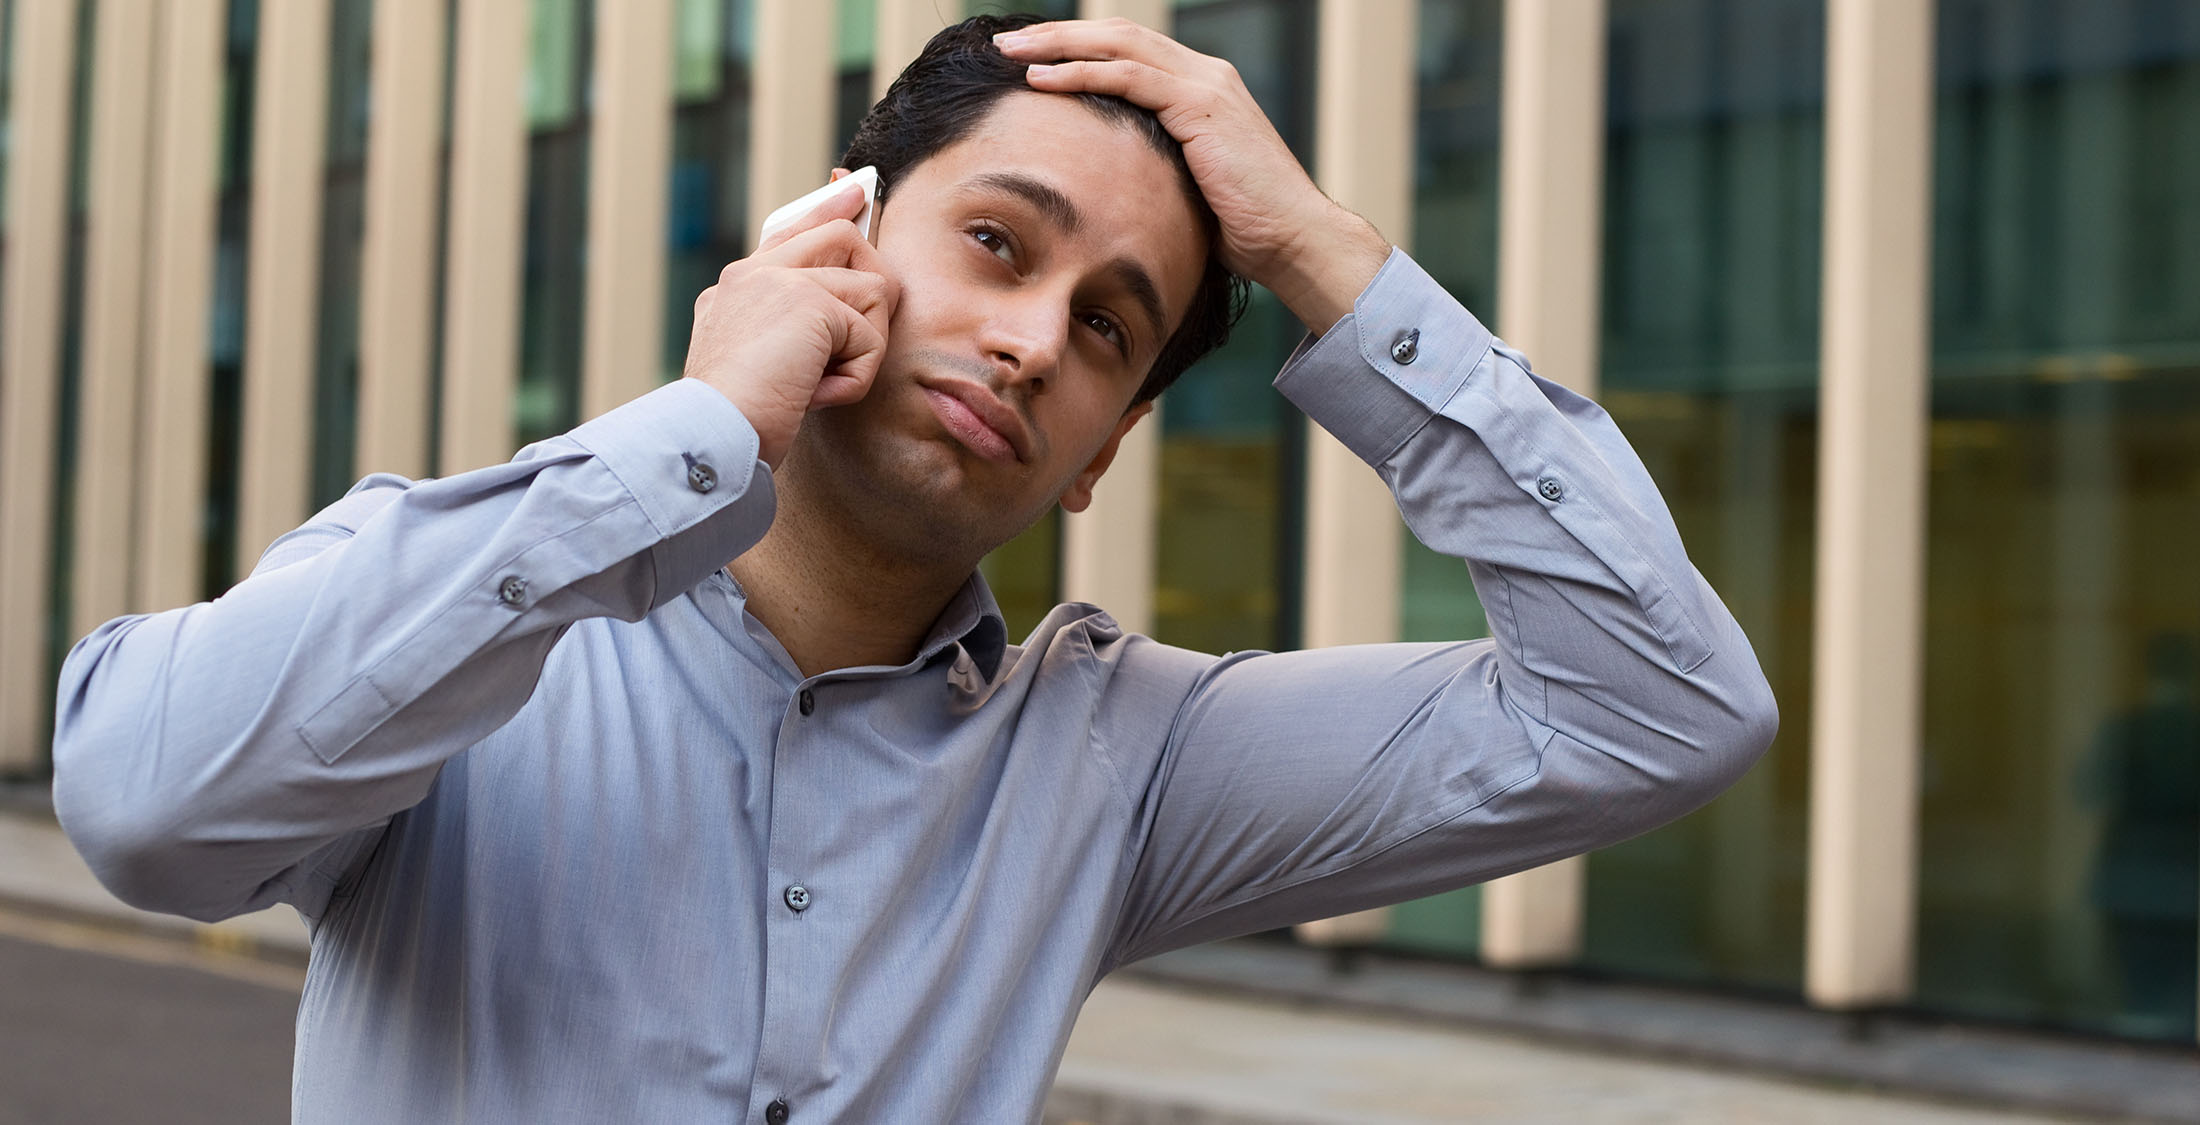 man frustrated on phone call